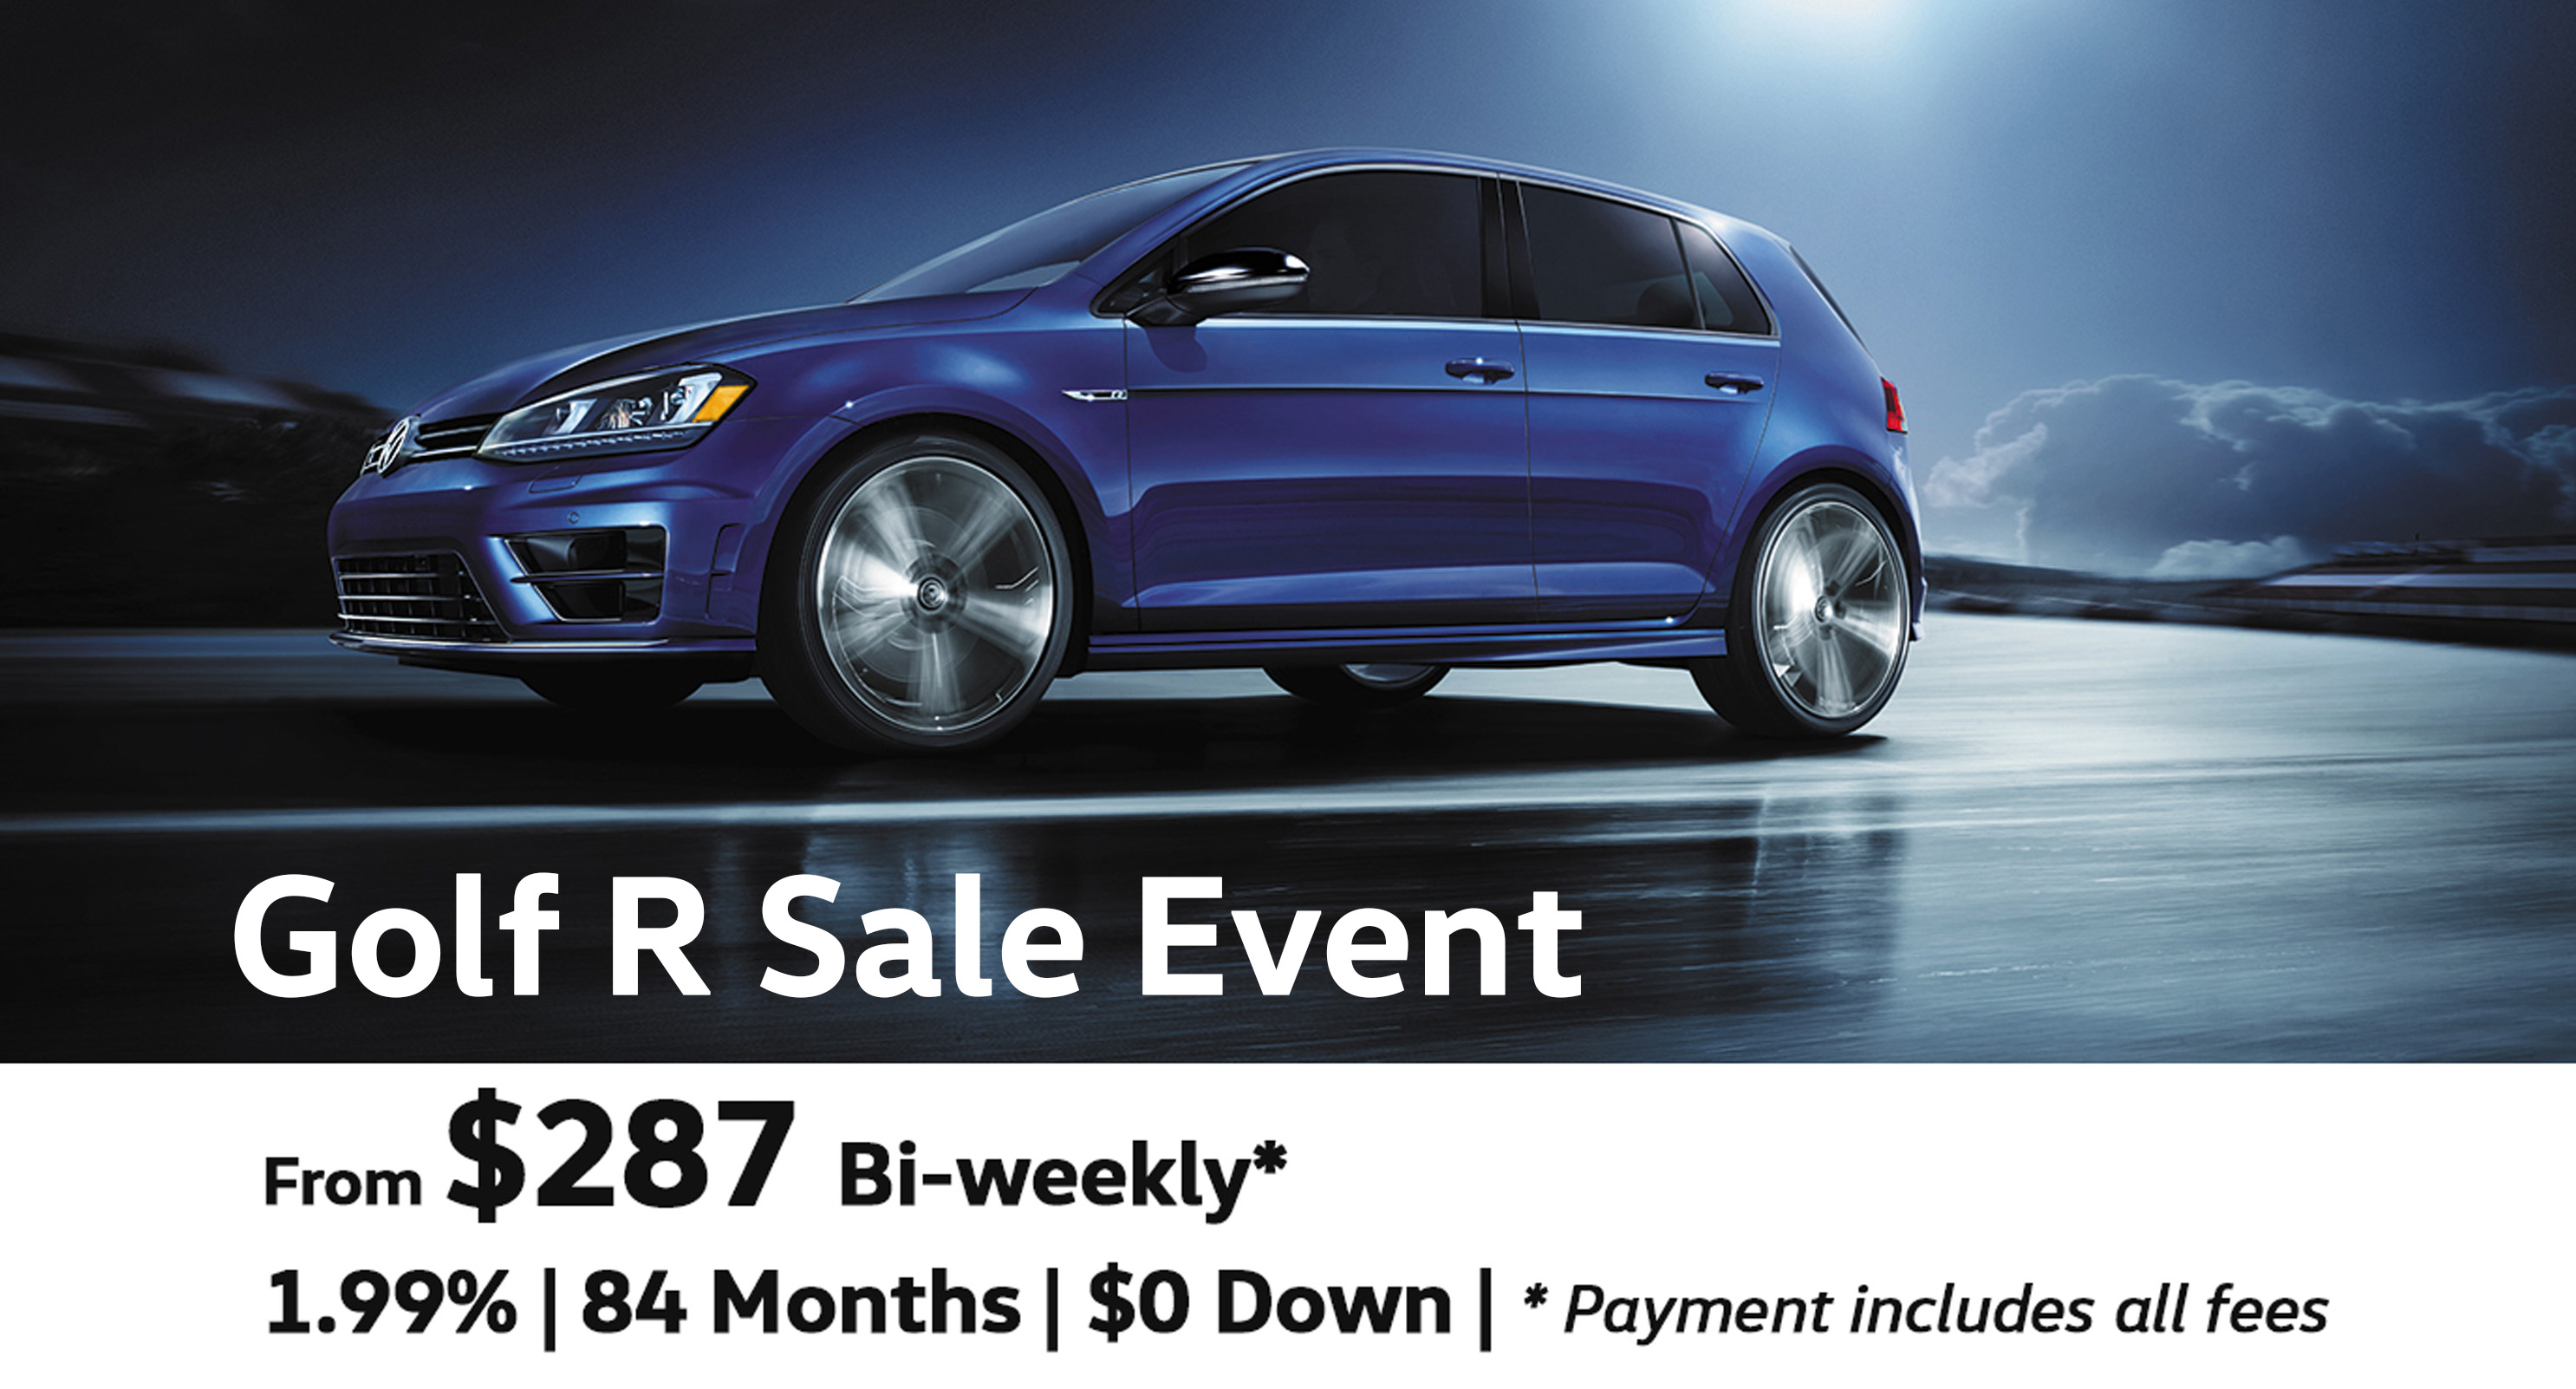 Golf R Sale Event at Clarkdale Volkswagen